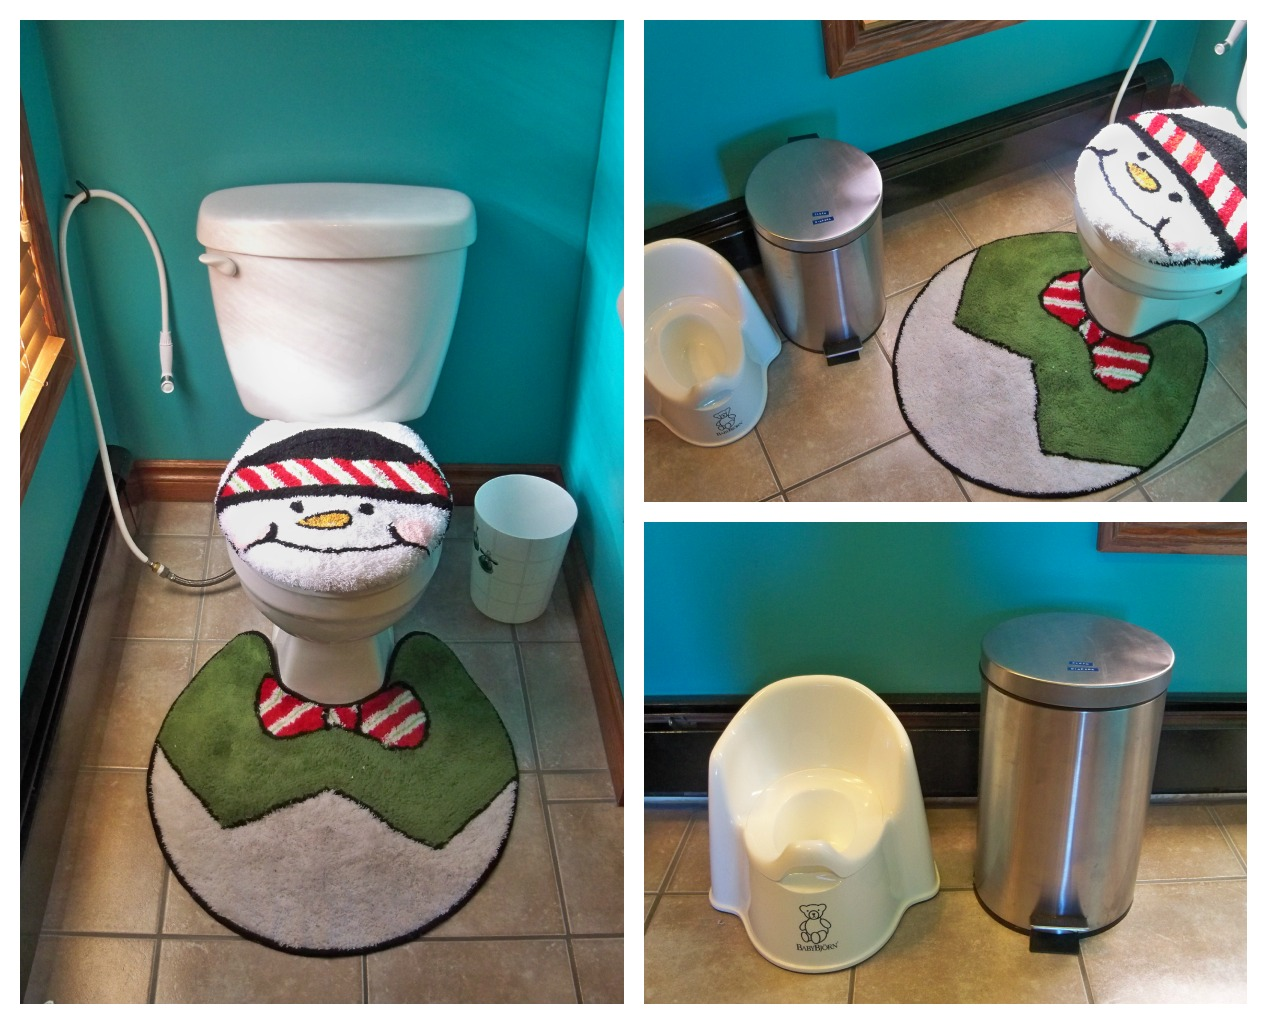 No Our Toilet Isn T Normally A Snowman Just For The Holidays It Adds A Little Whimsy To Our Bathroom